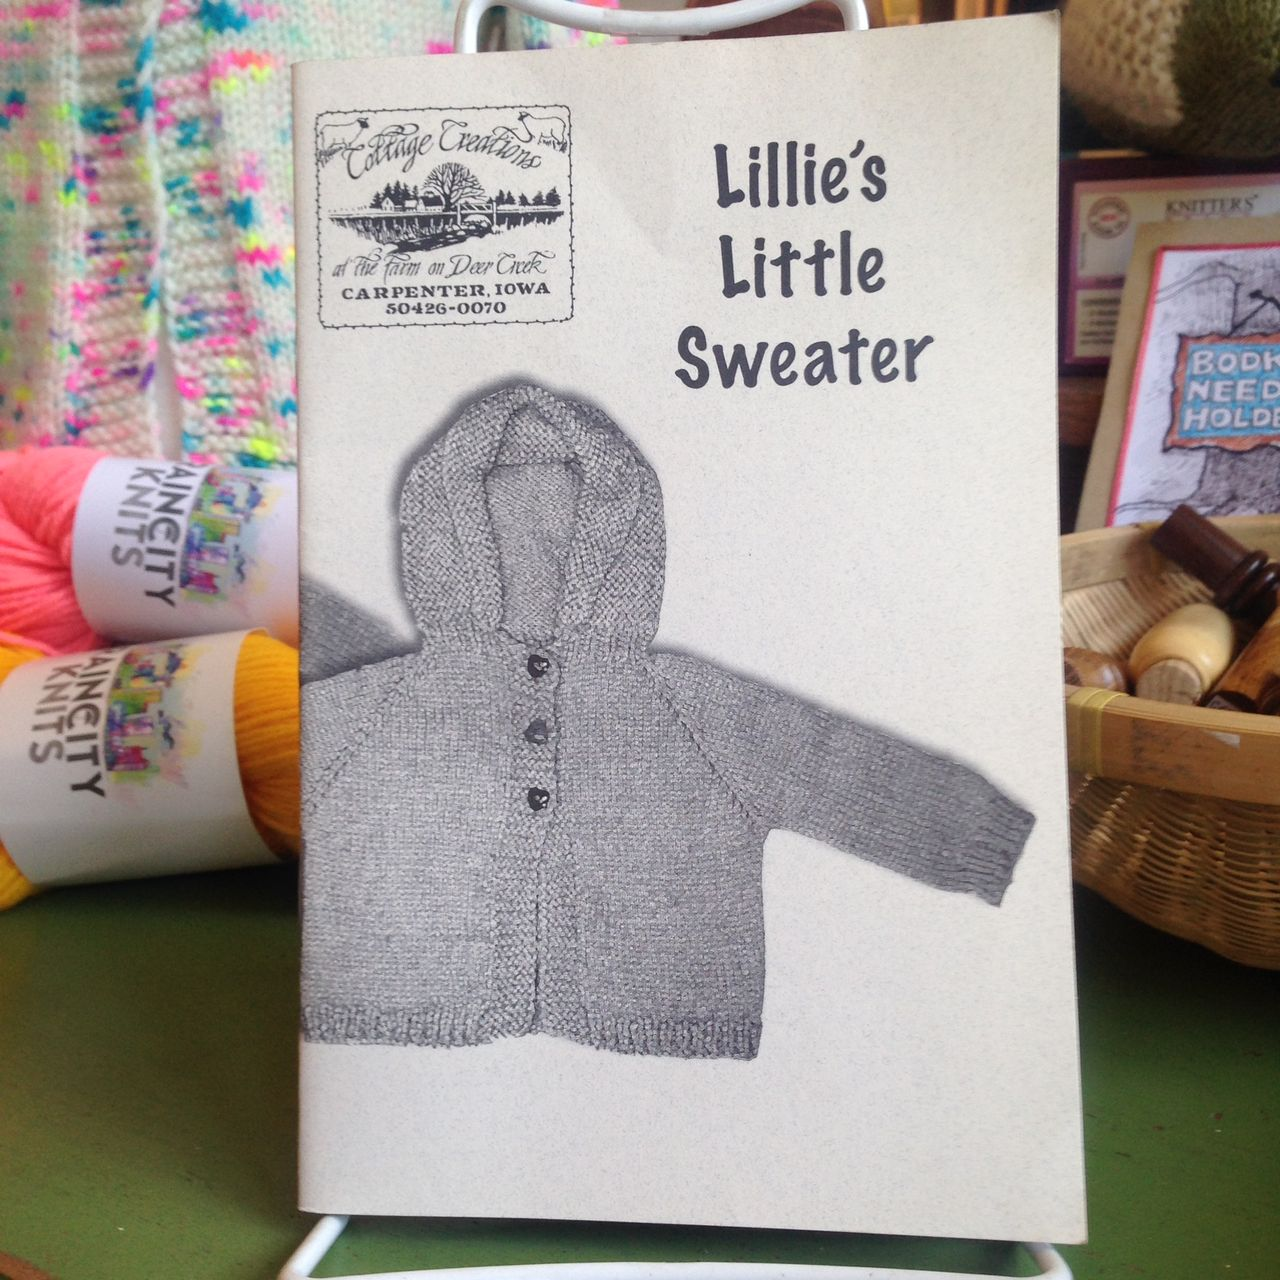 Lillie's Little Sweater by Cottage Creations